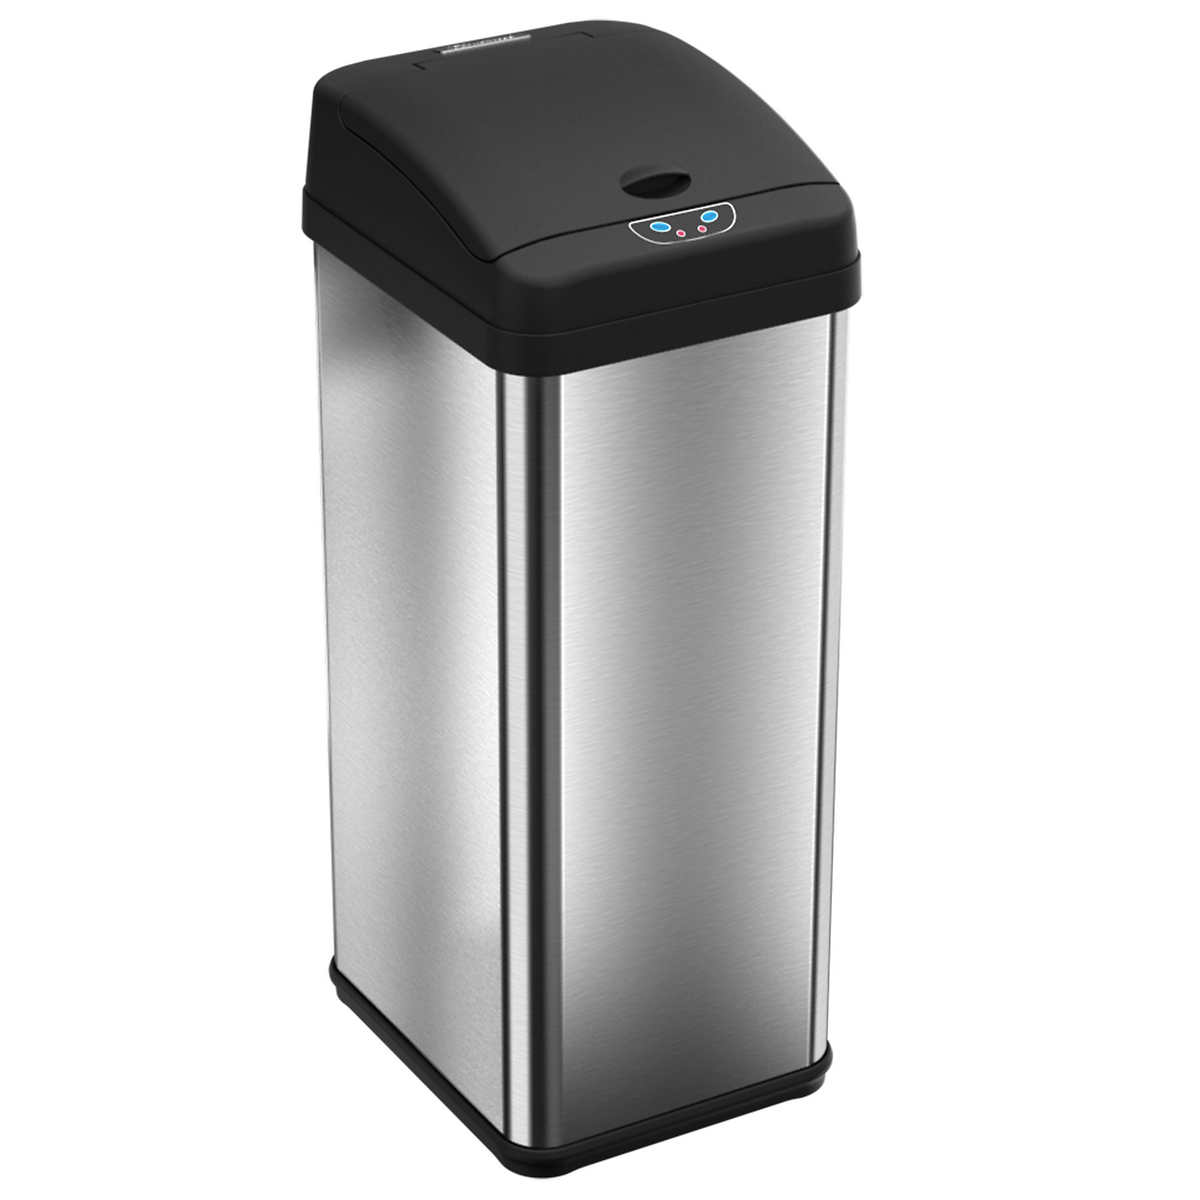 Kitchen Garbage Can Itouchless 13 Gallon Touchless Motion Stainless Steel Trash Can